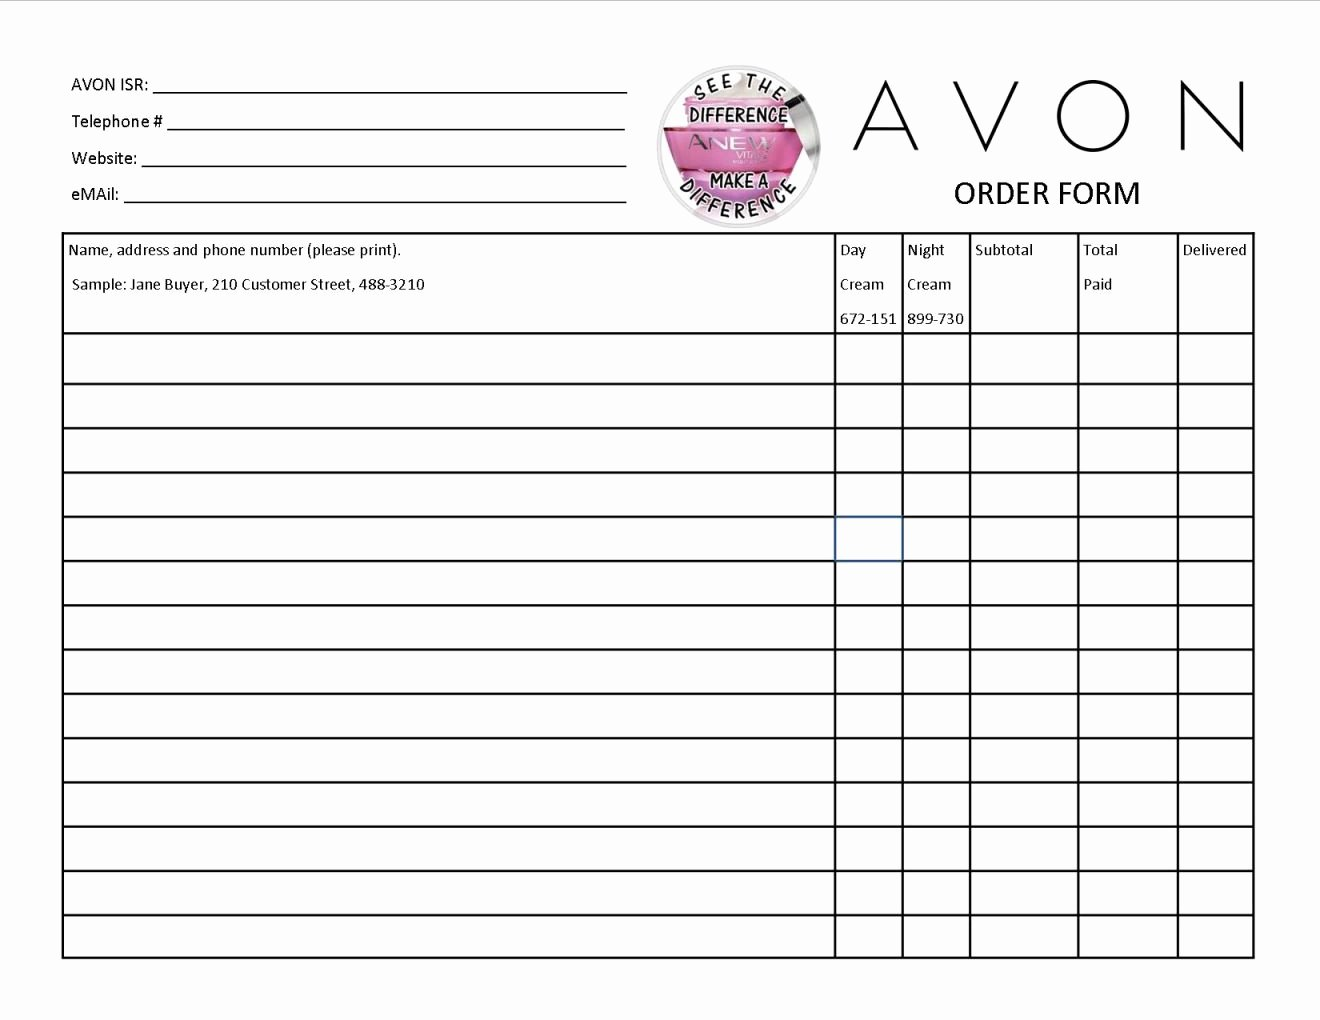 New Avon order form Template Nh04 – Documentaries for Change